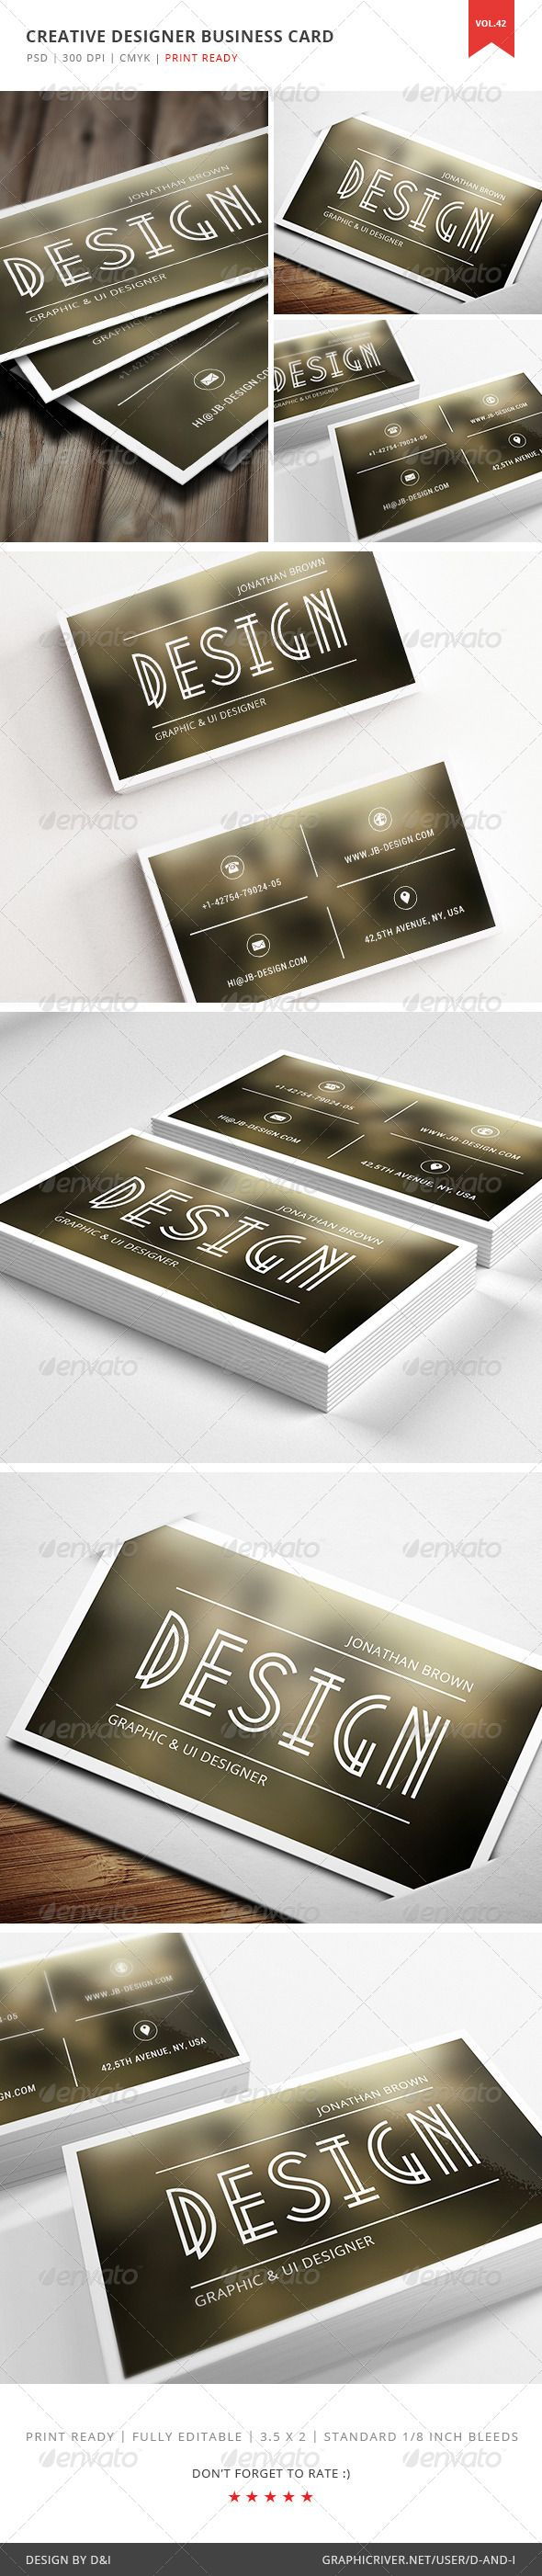 105 best print templates images on pinterest font logo print creative designer business card vol 42 graphicriver item features layered photoshop psd reheart Image collections